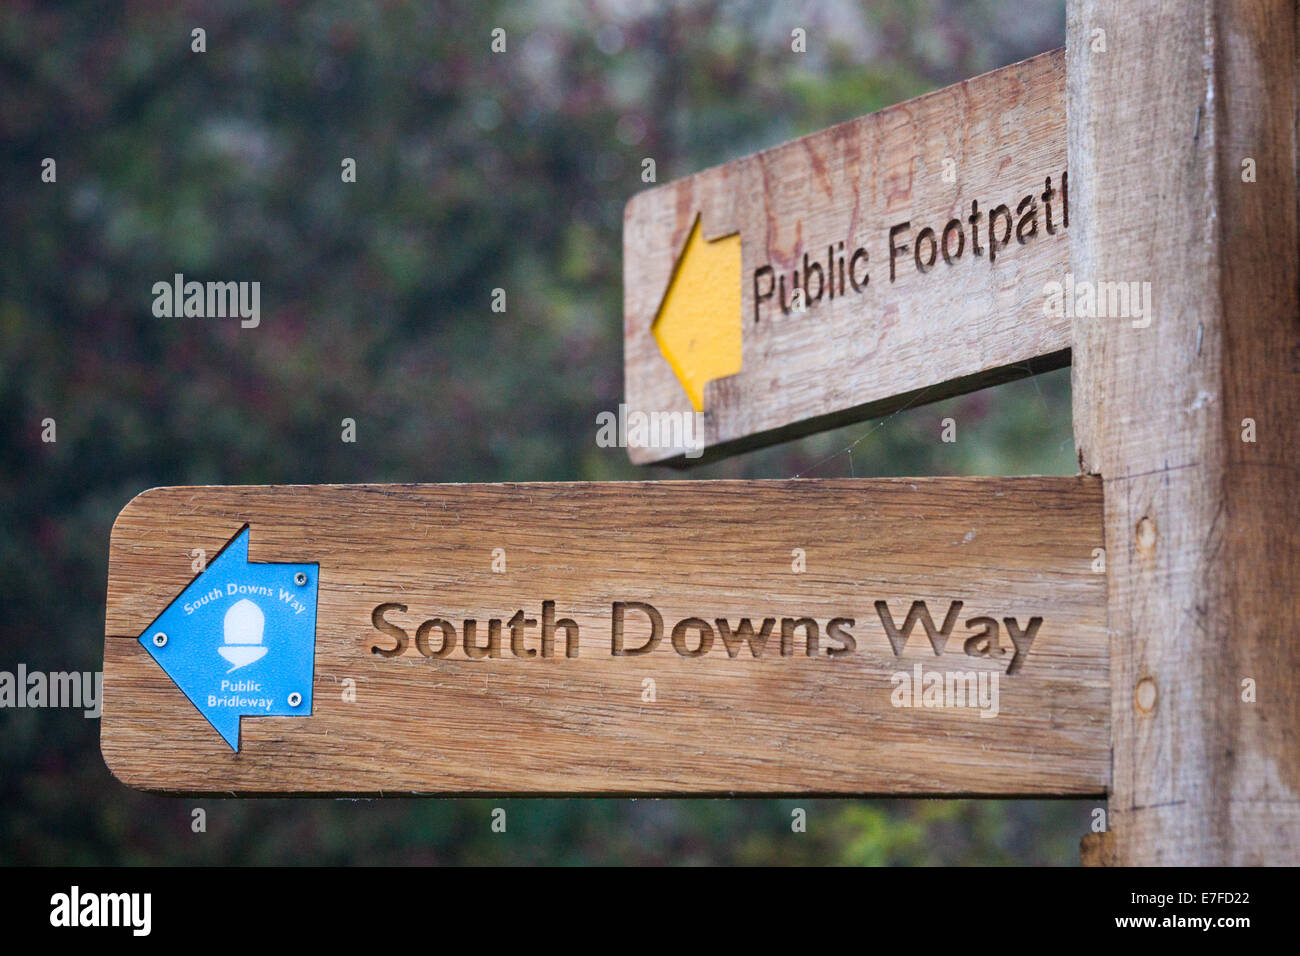 A sign on Butser Hill near Petersfield for the South Downs Way and a Public Footpath - Stock Image